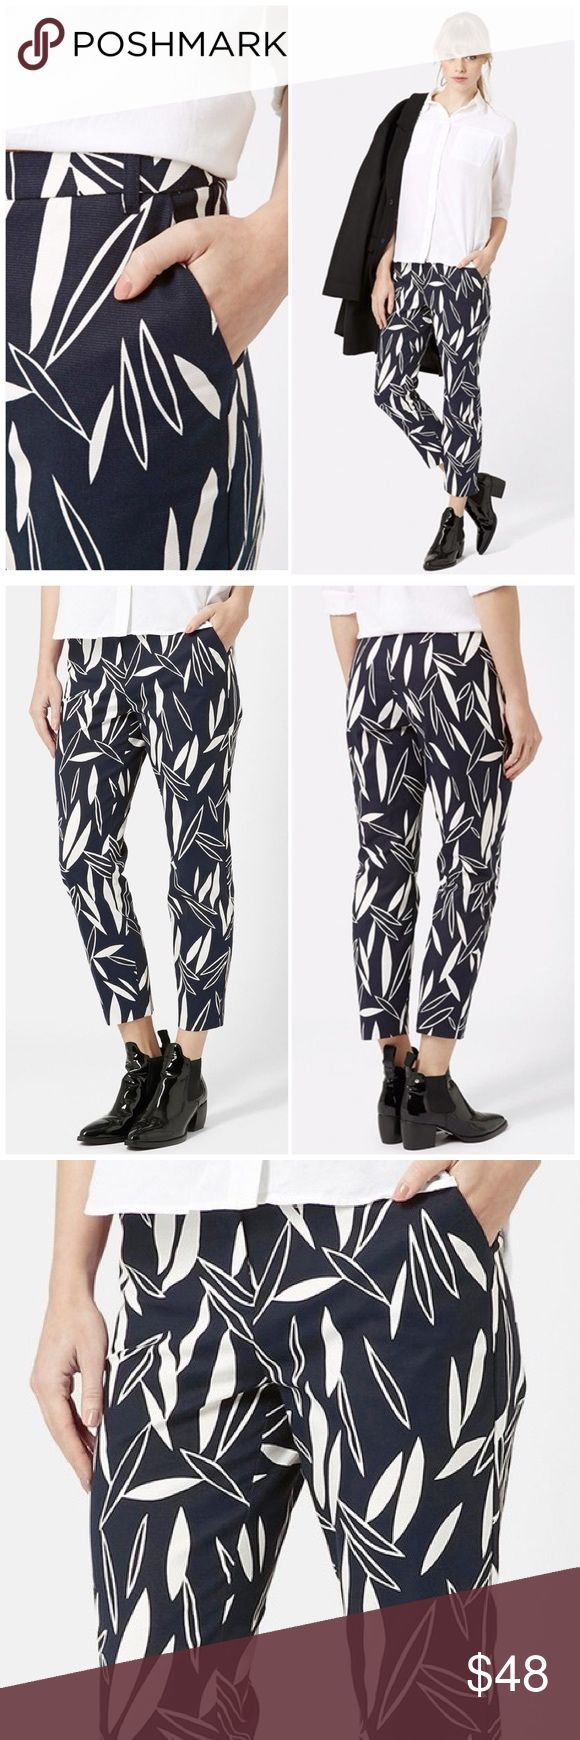 """NWT Topshop Leaf Print Cigarette Trouser Tailored pants in a classic cigarette silhouette feature a textured stretch-cotton fabrication in a graphic cape-leaf print. 26"""" inseam; 12"""" leg opening; 10"""" front rise; 14"""" back rise (size 8). Zip fly with hook-and-bar closure. Front slant pockets. 98% cotton, 2% elastane. Topshop Pants Ankle & Cropped"""